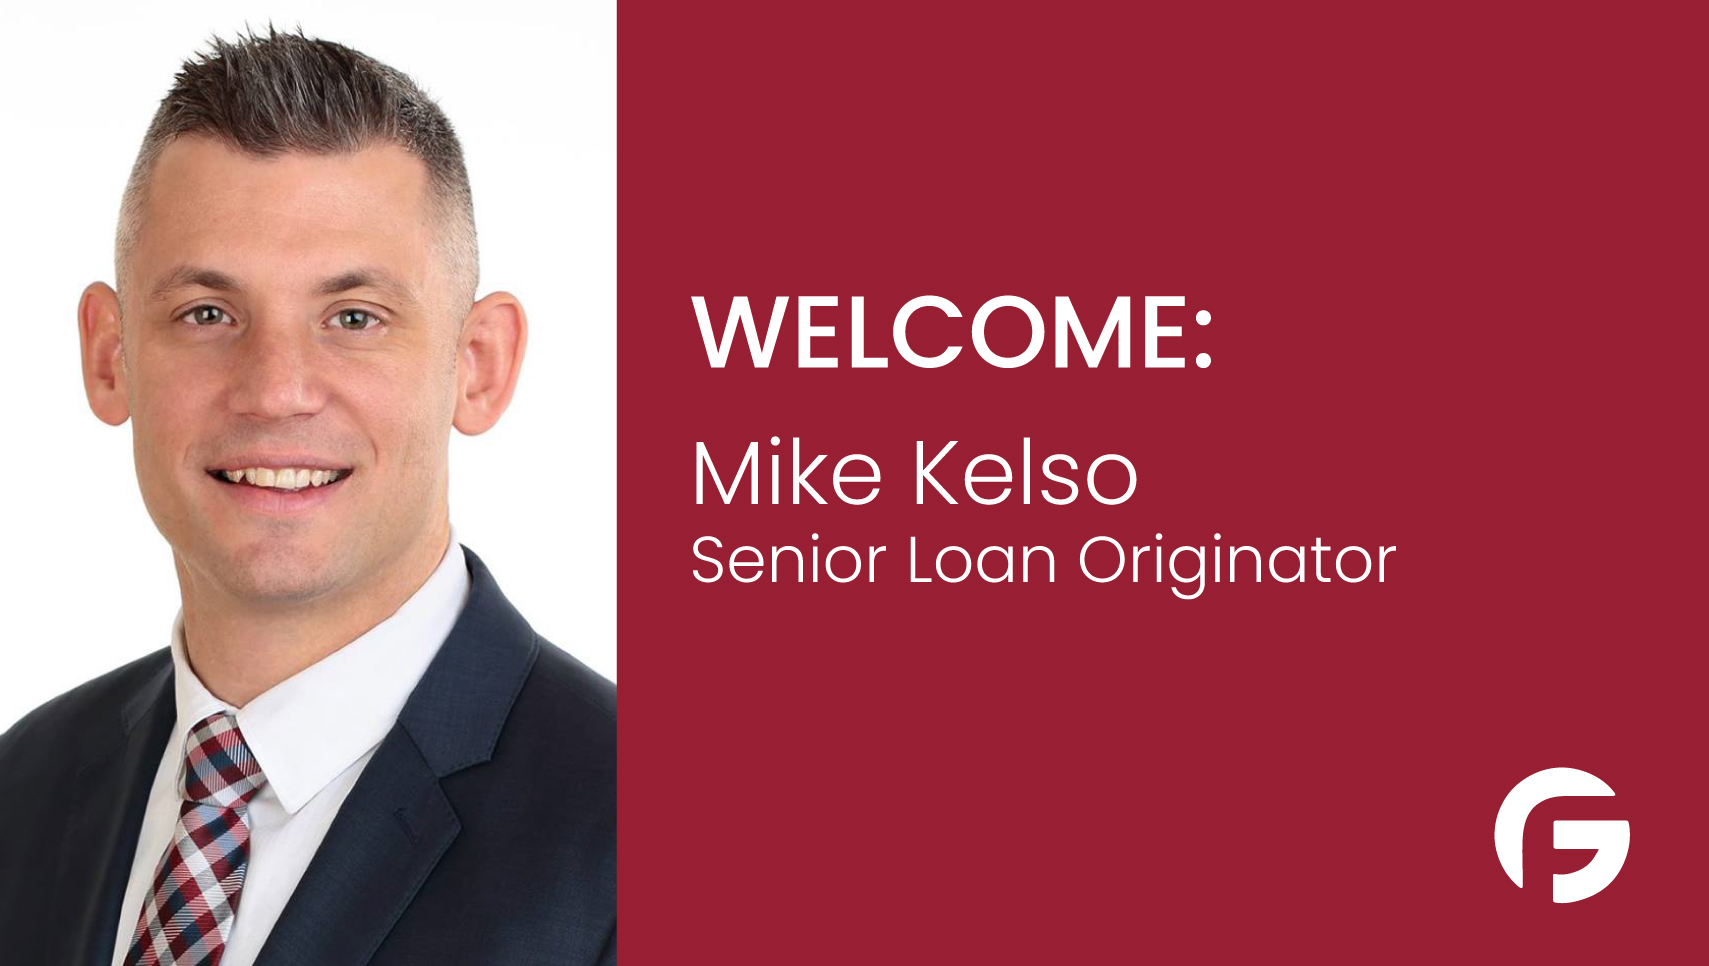 Mike Kelso, Senior Loan Officer serving Arizona